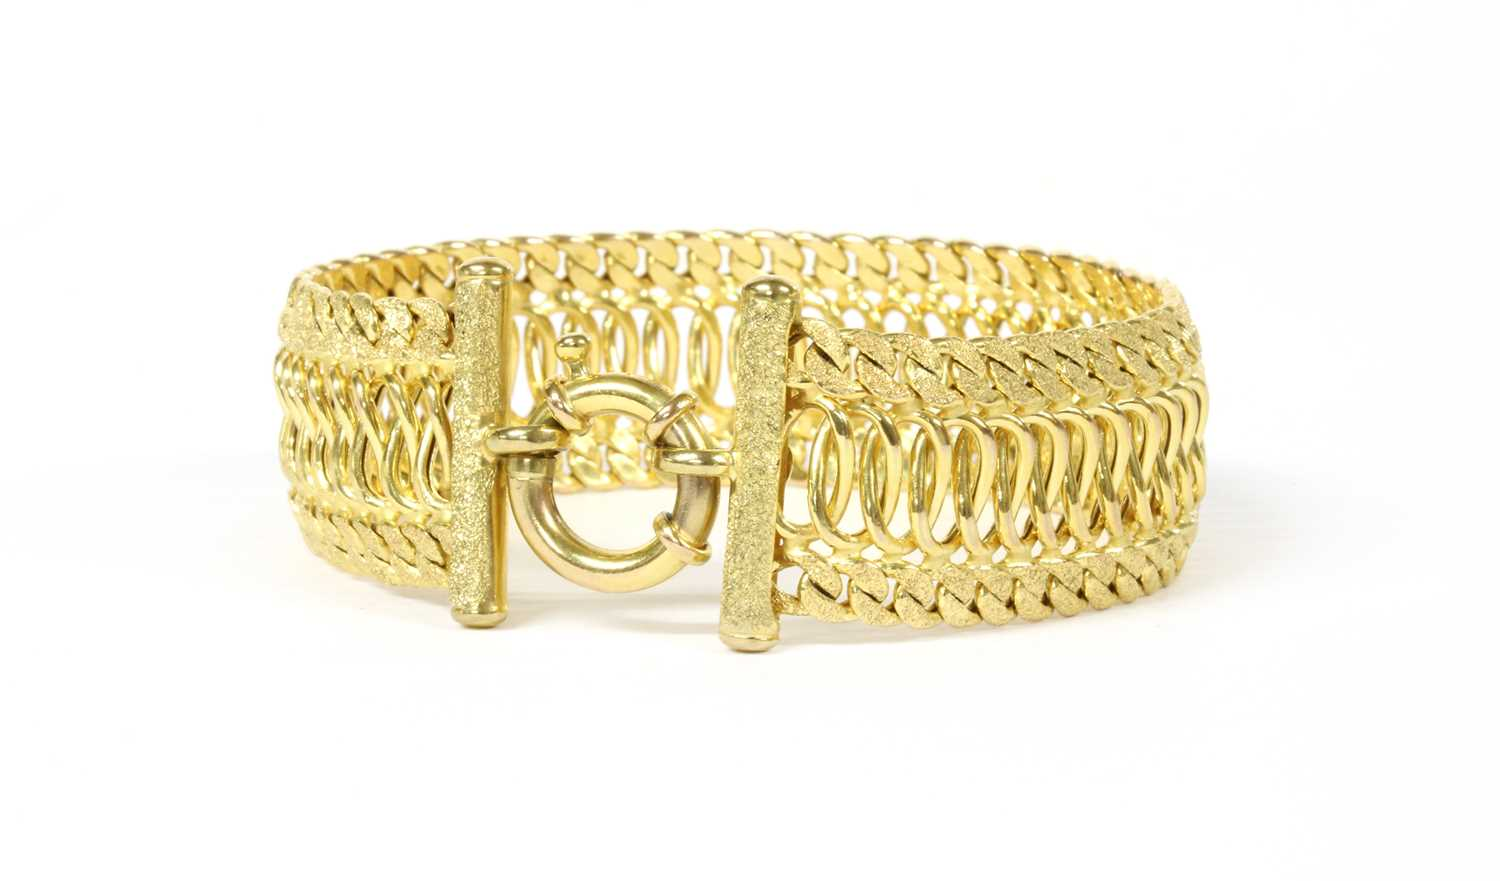 Lot 67 - A 9ct gold bracelet